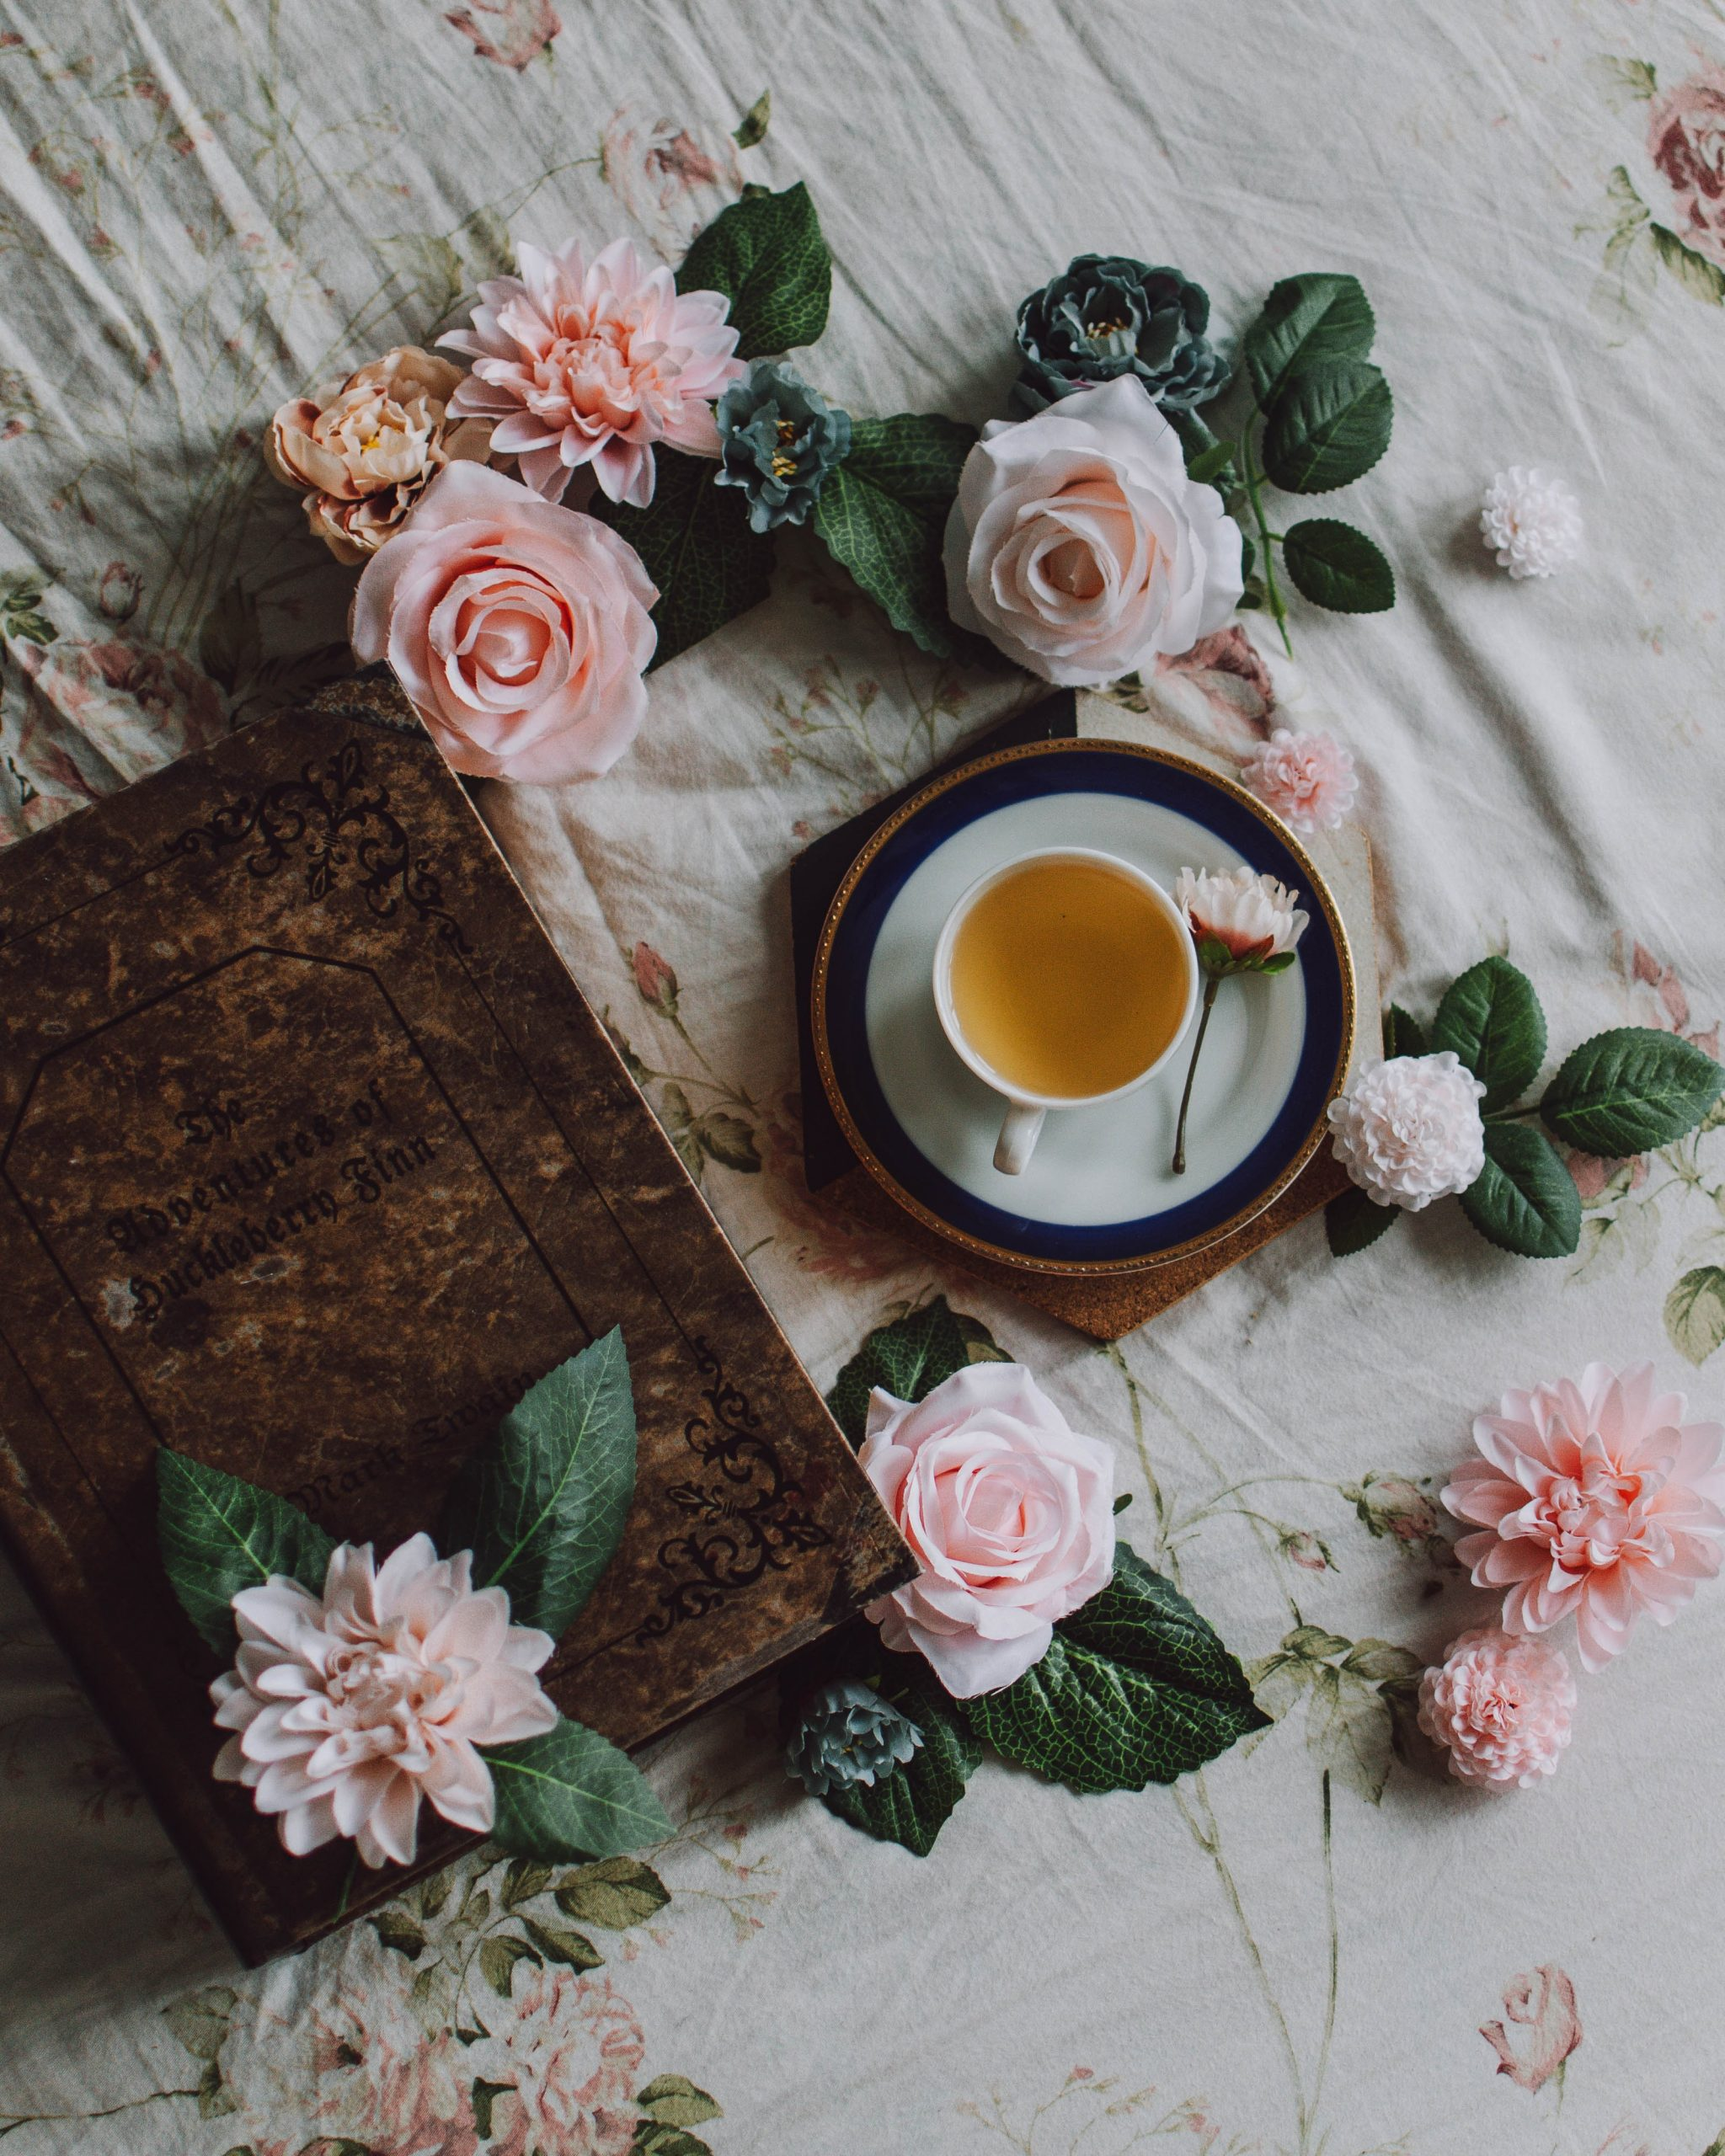 A book and various roses with a cup of rose tea placed on a saucer, all placed on a tablecloth